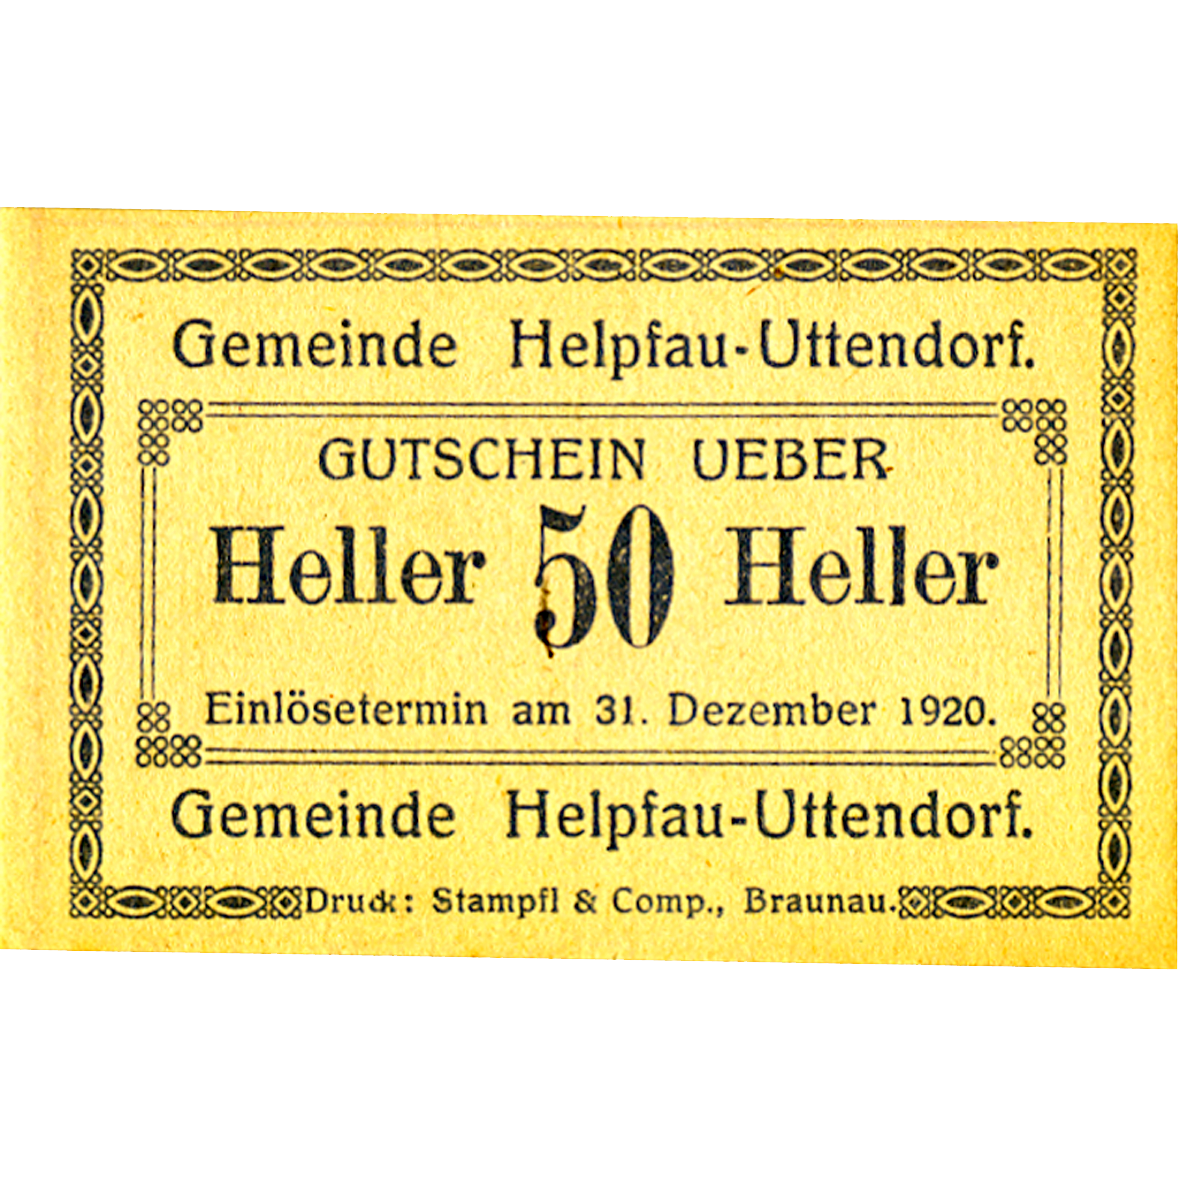 Republic of Austria, Community of Helpfau-Uttendorf, 50 Heller 1920 (obverse)